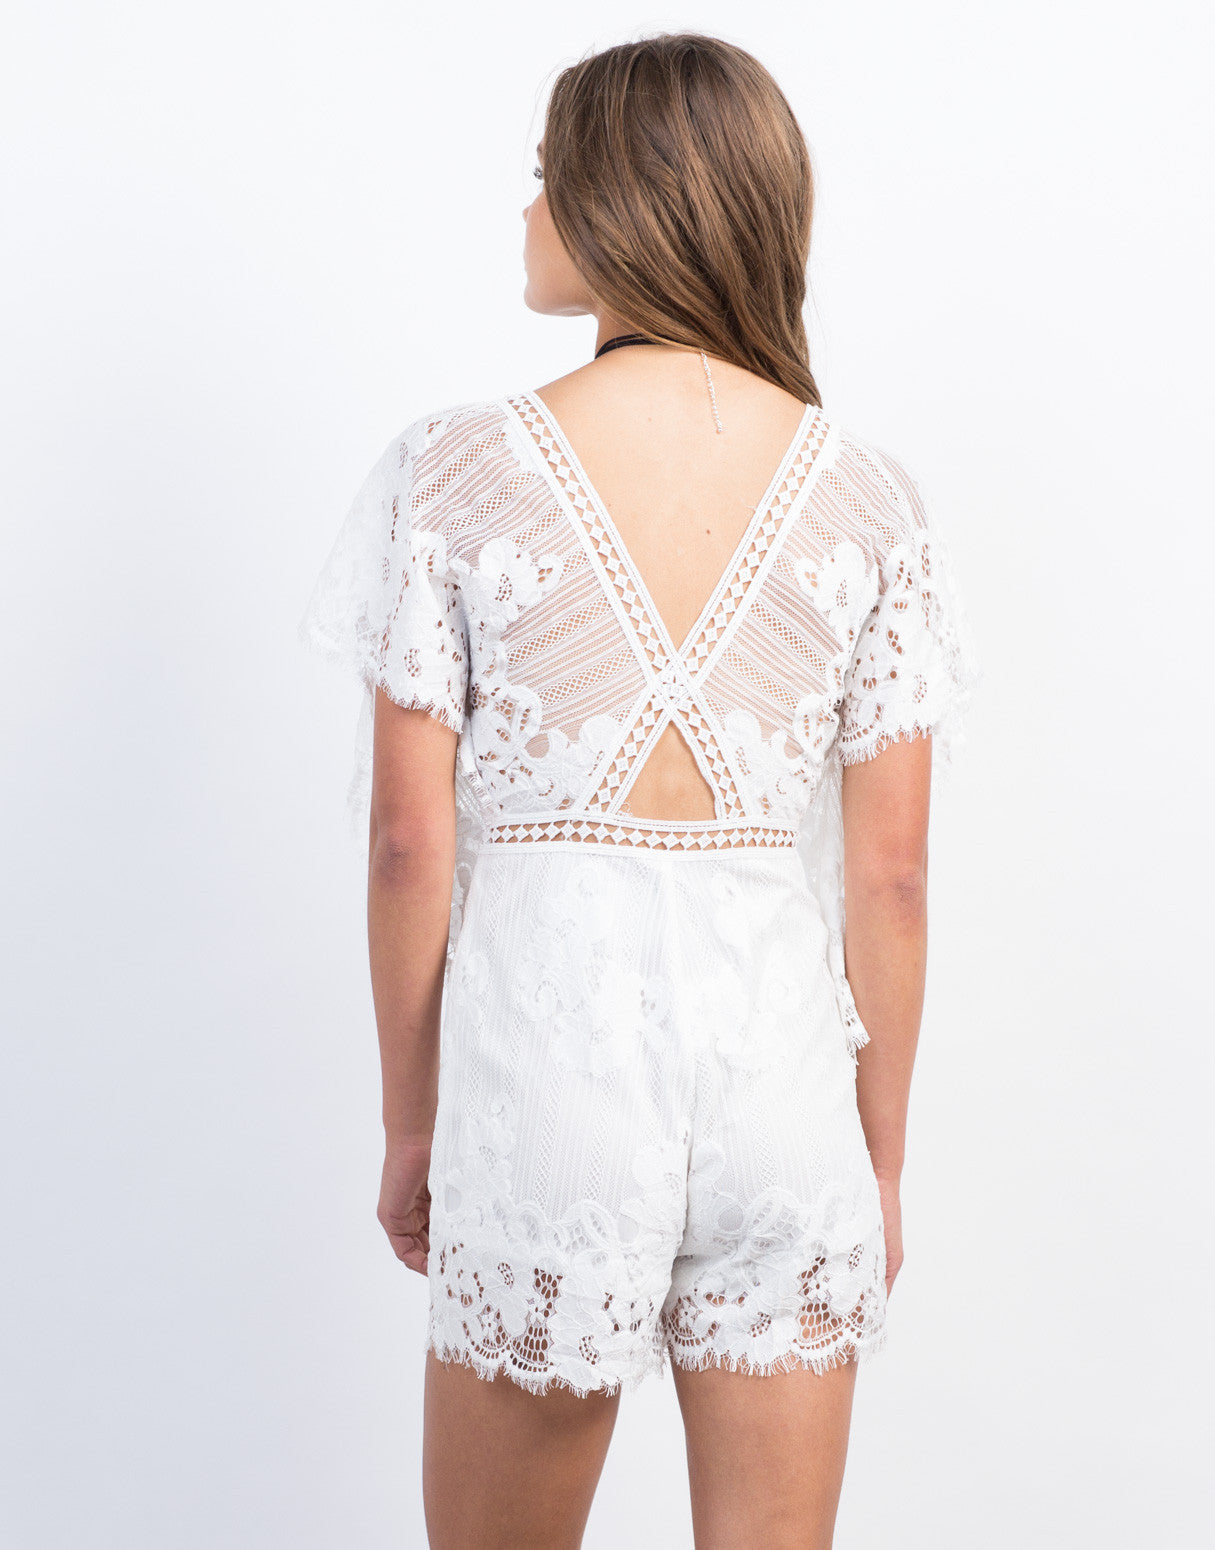 Back View of Floral Crochet Lace Romper